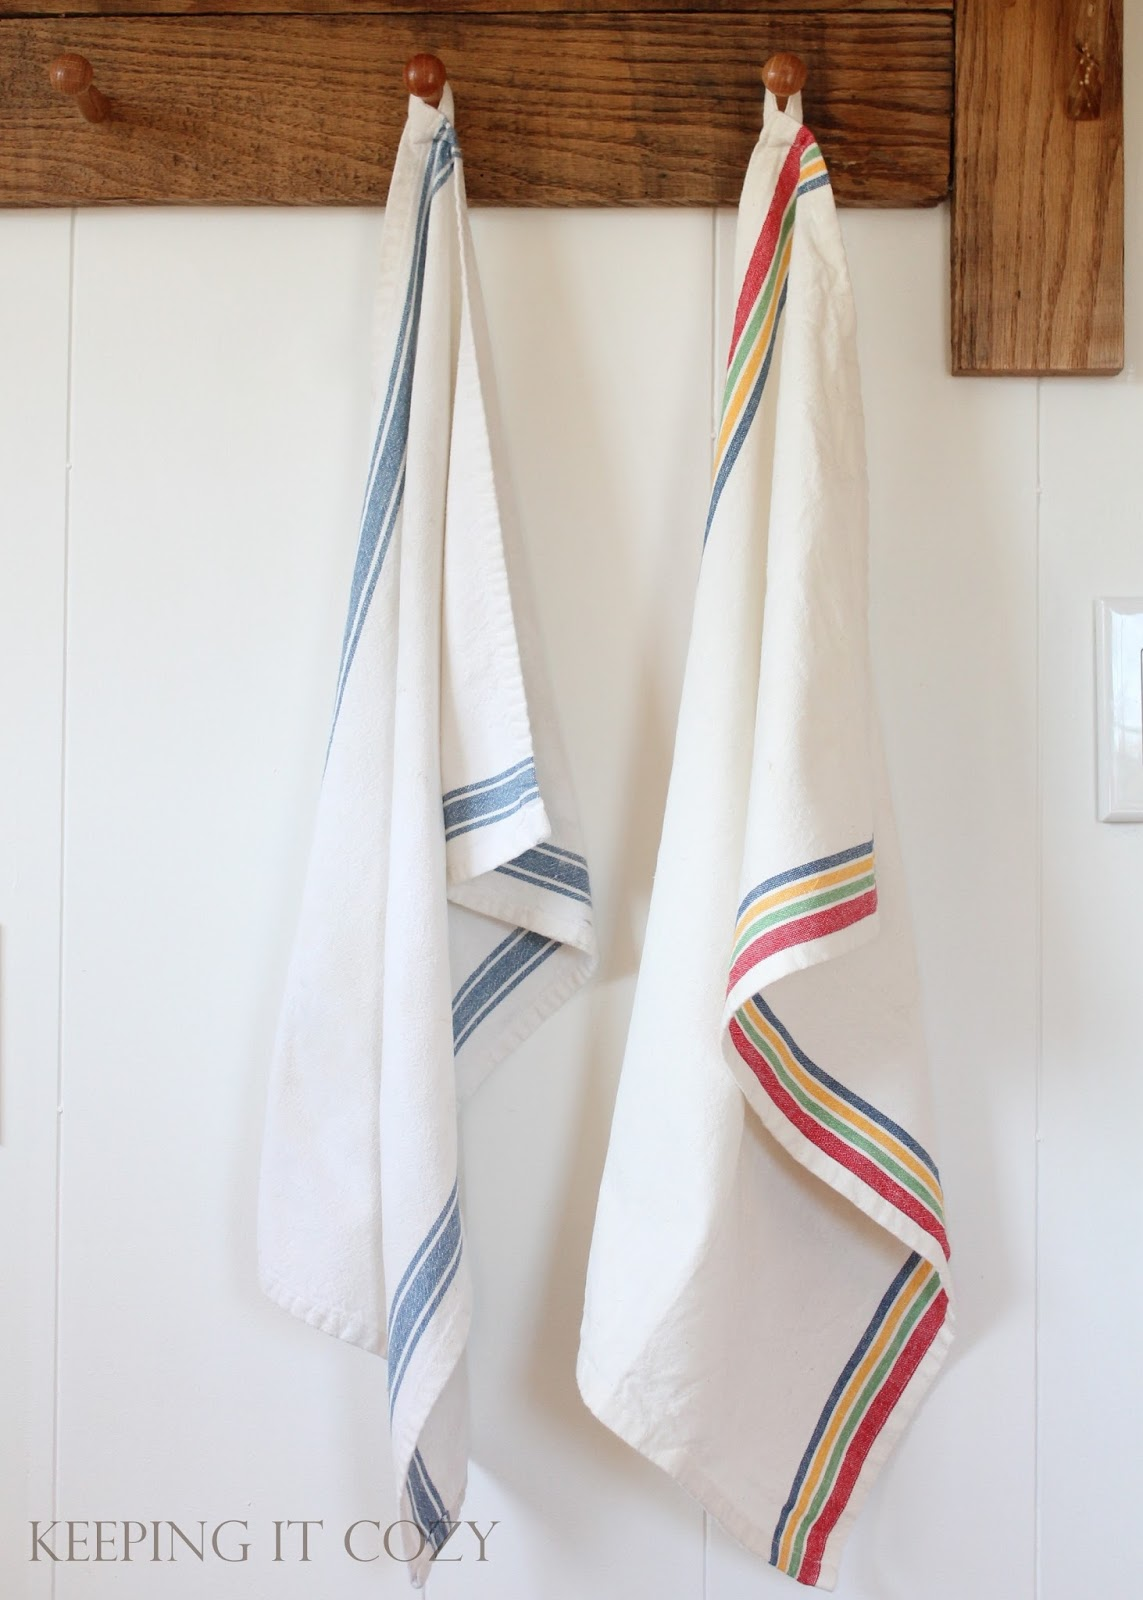 Keeping It Cozy My Favorite Dish Towels